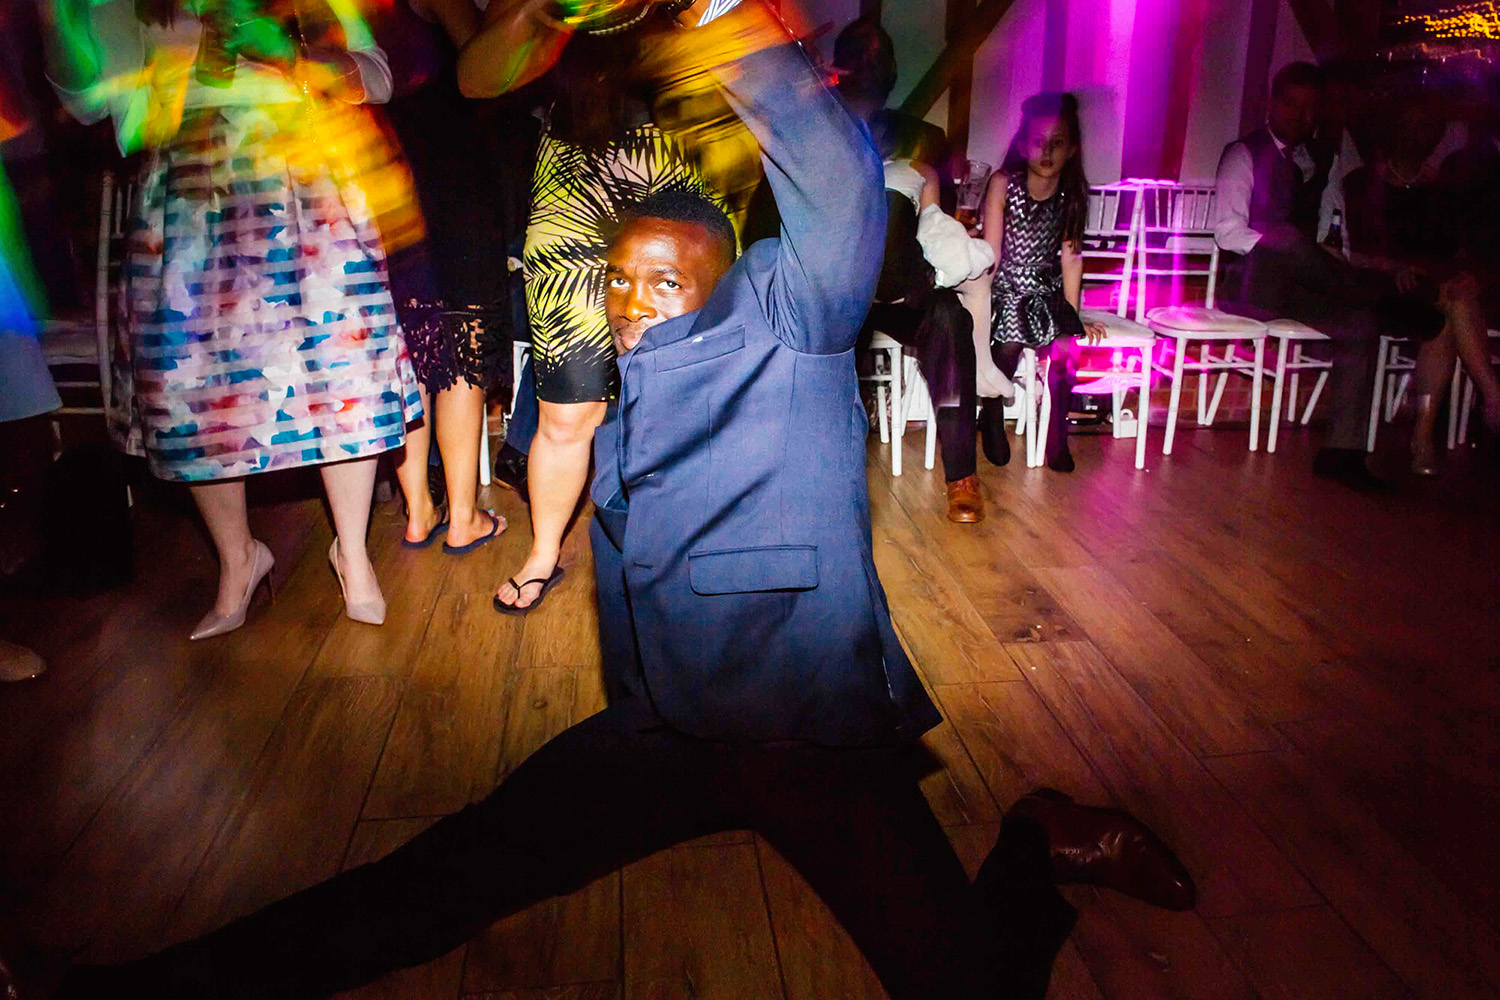 A WEDDING GUEST PULLING AN AMAZING DANCE MOVE ON A WEDDING DANCE FLOOR